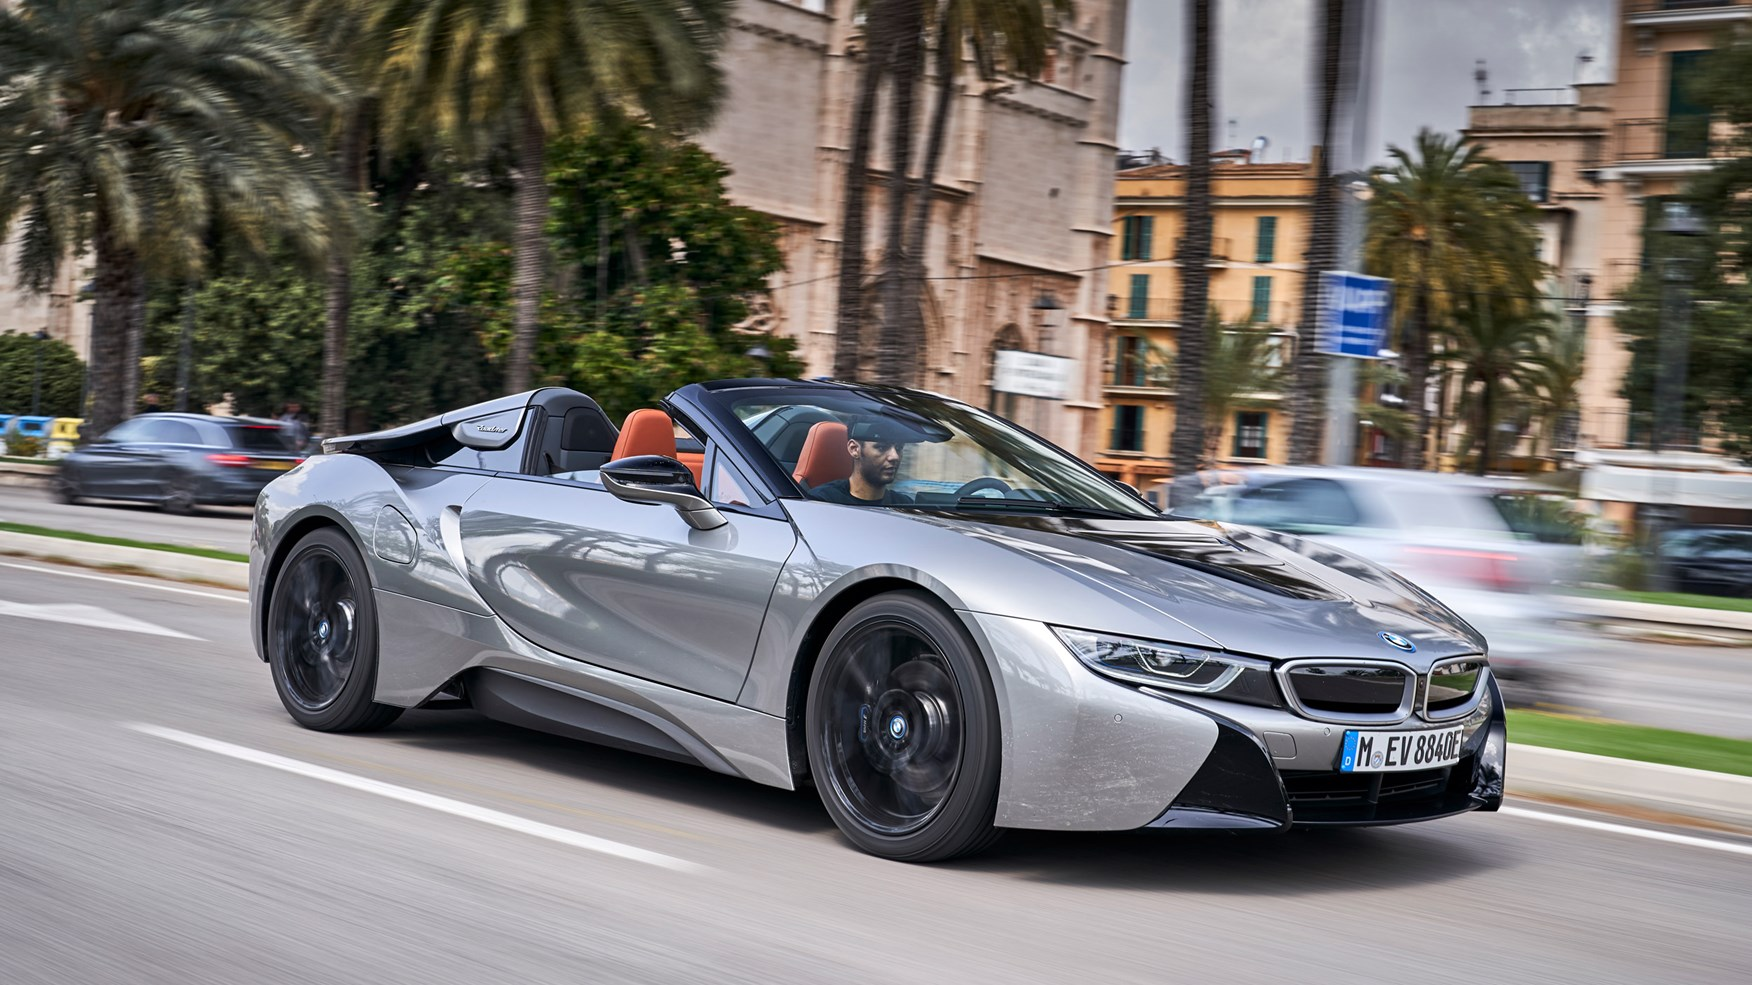 Bmw I8 Roadster Review The Hybrid Supercar Refined Car